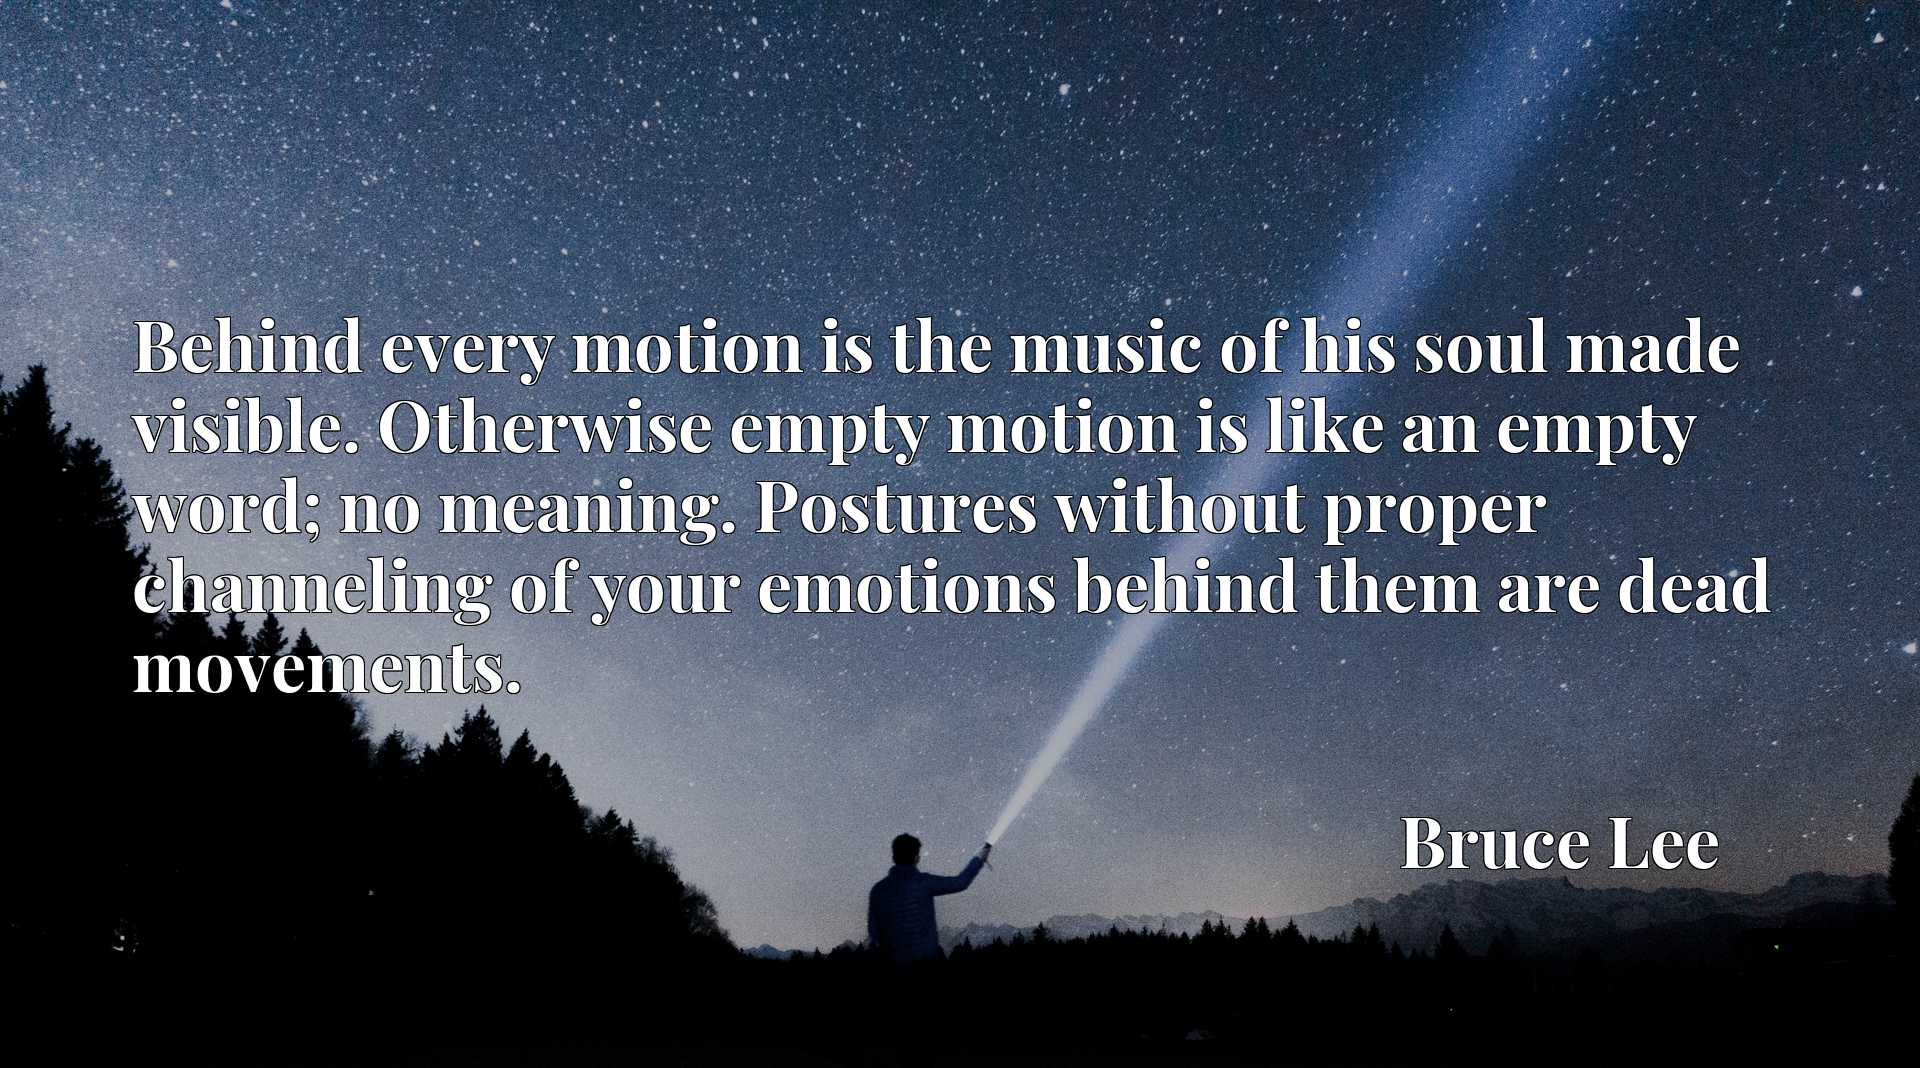 Behind every motion is the music of his soul made visible. Otherwise empty motion is like an empty word; no meaning. Postures without proper channeling of your emotions behind them are dead movements.